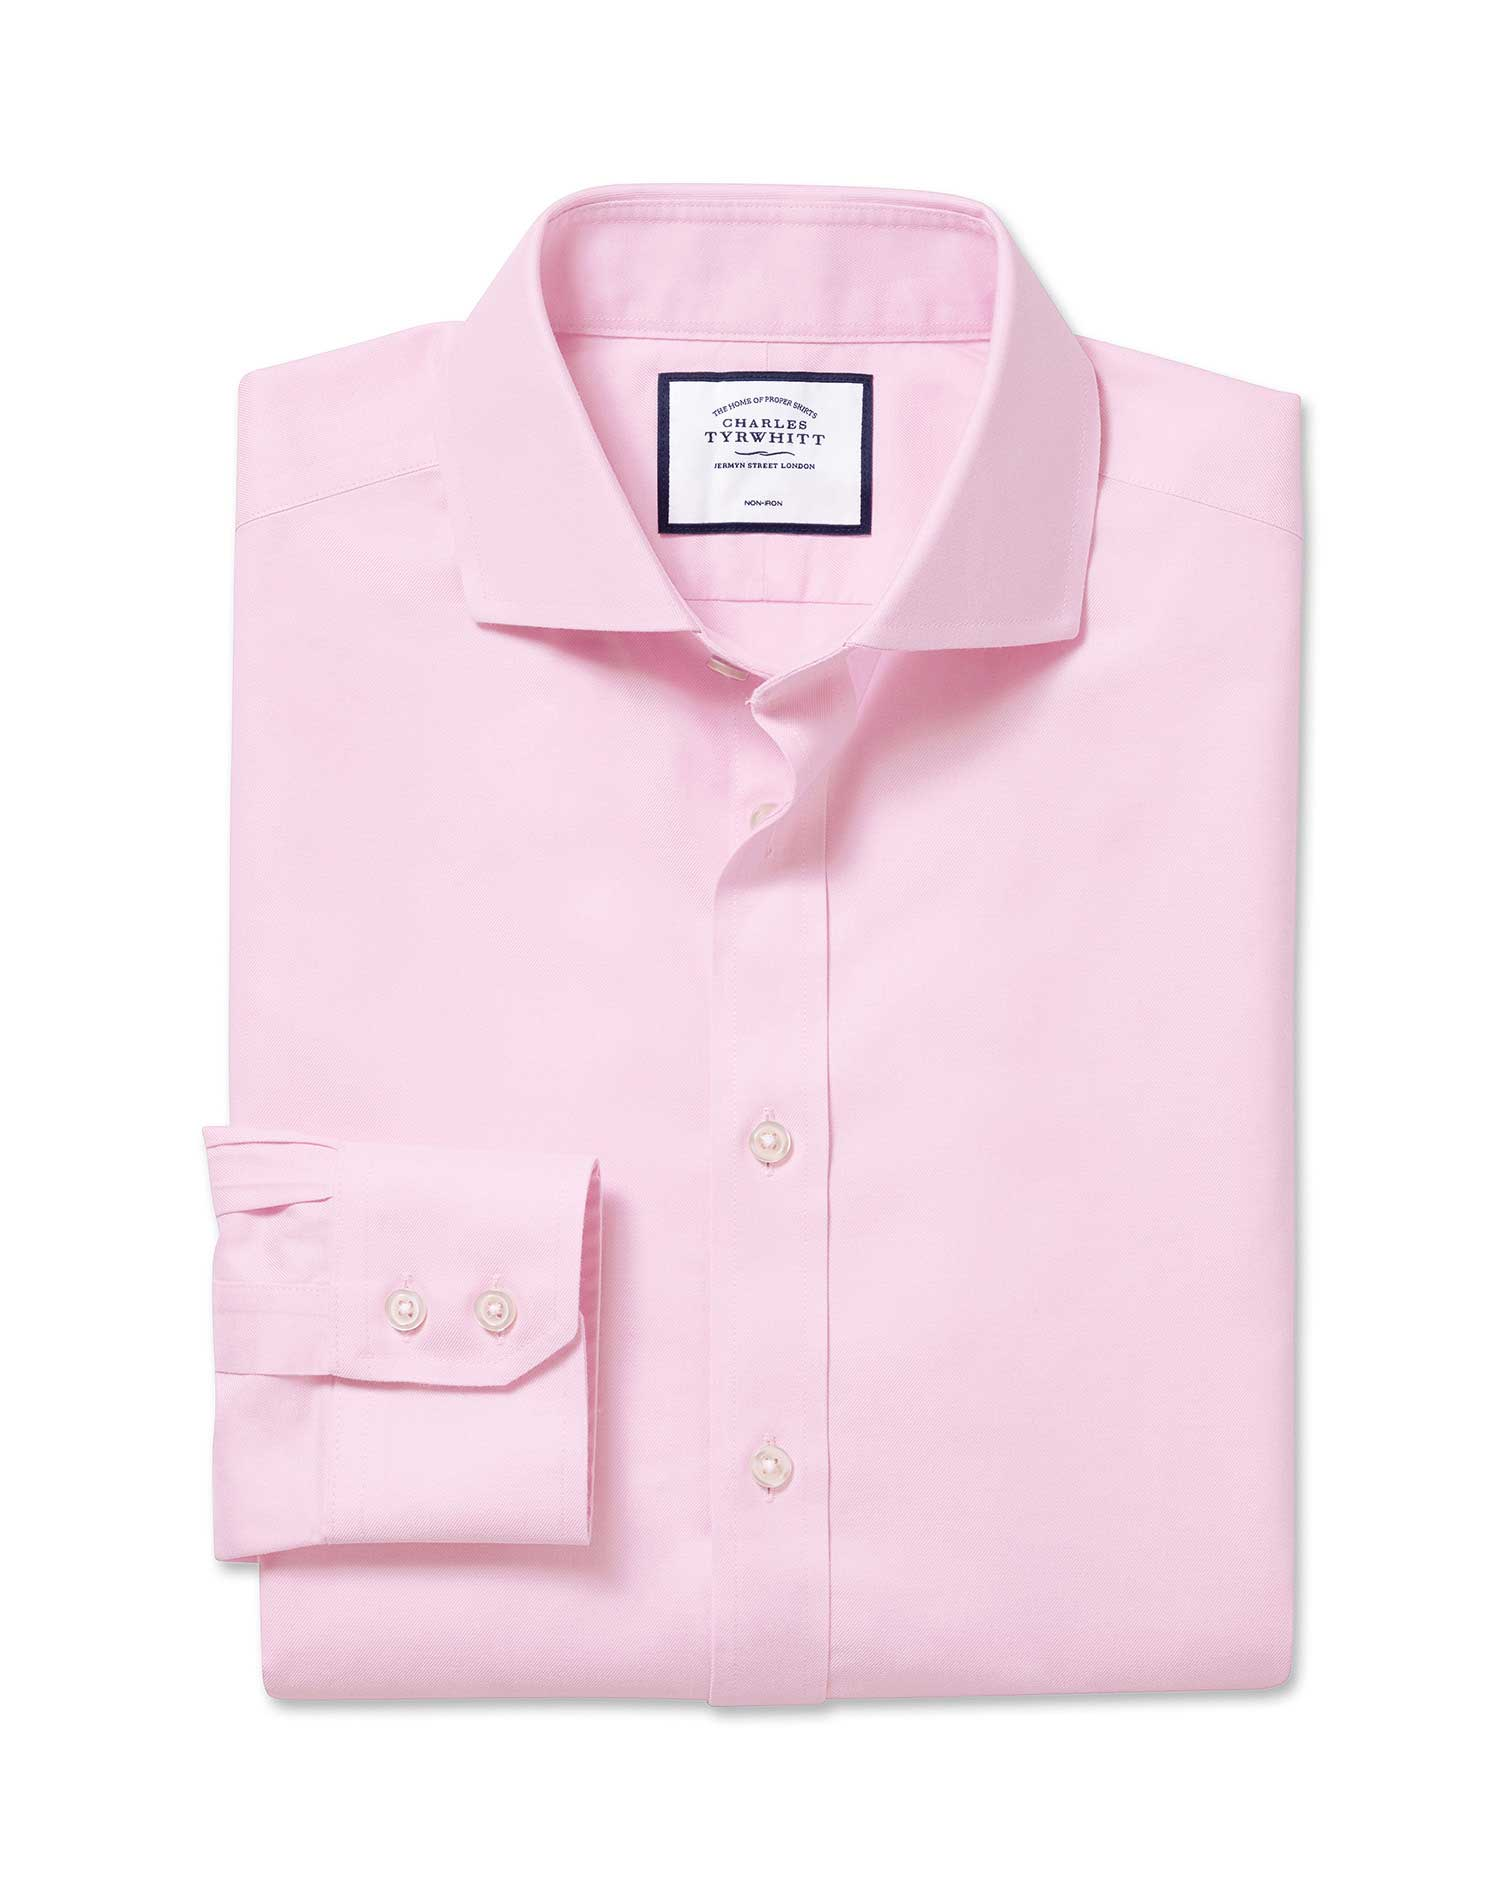 Super Slim Fit Cutaway Non-Iron Twill Pink Cotton Formal Shirt Double Cuff Size 17/35 by Charles Tyr